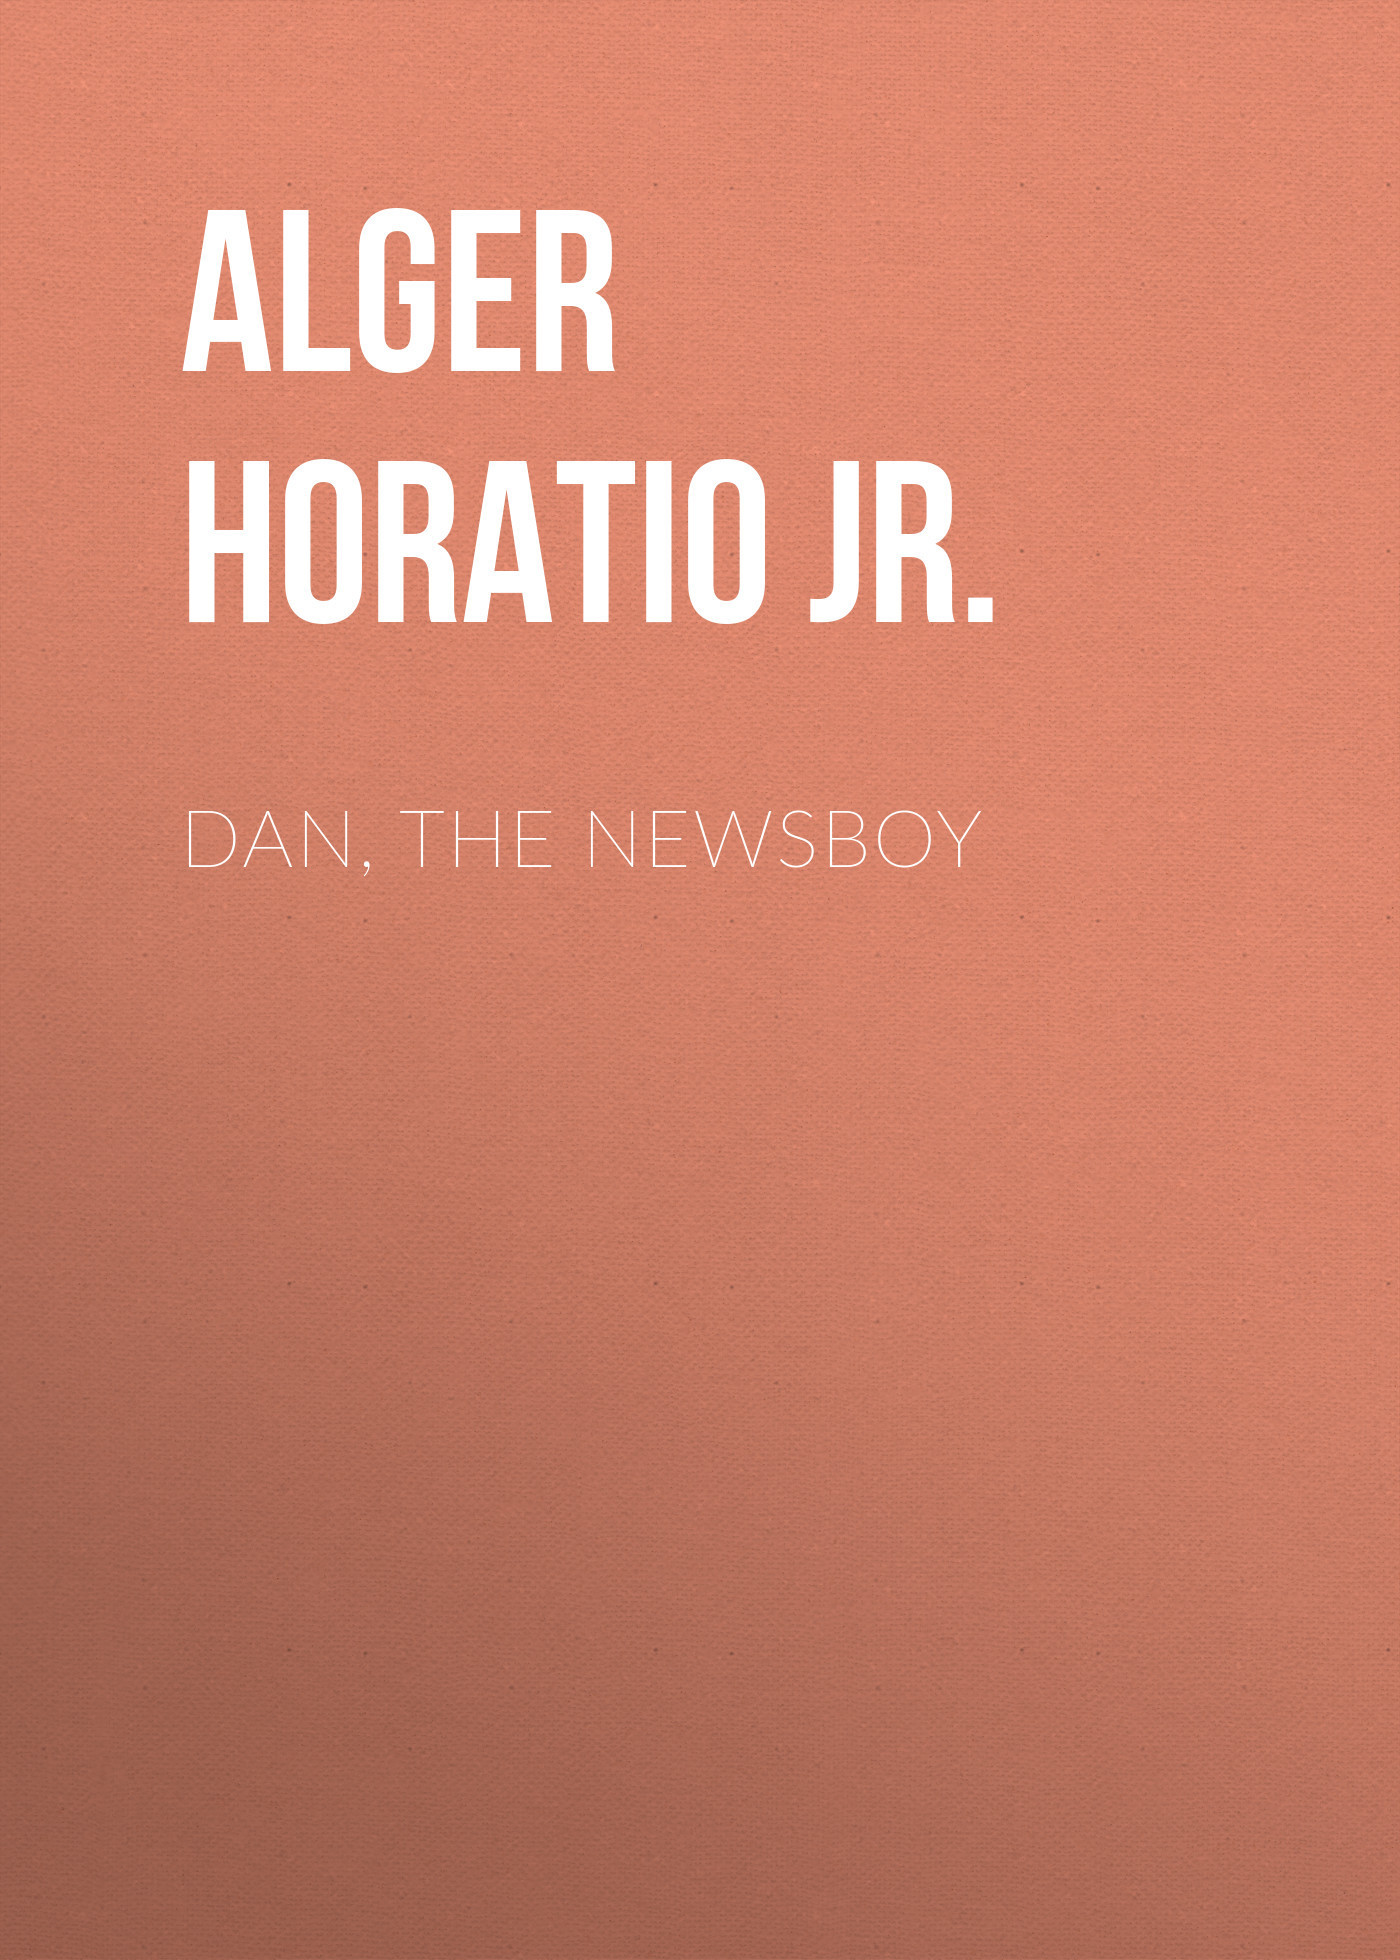 Alger Horatio Jr. Dan, The Newsboy цена 2017